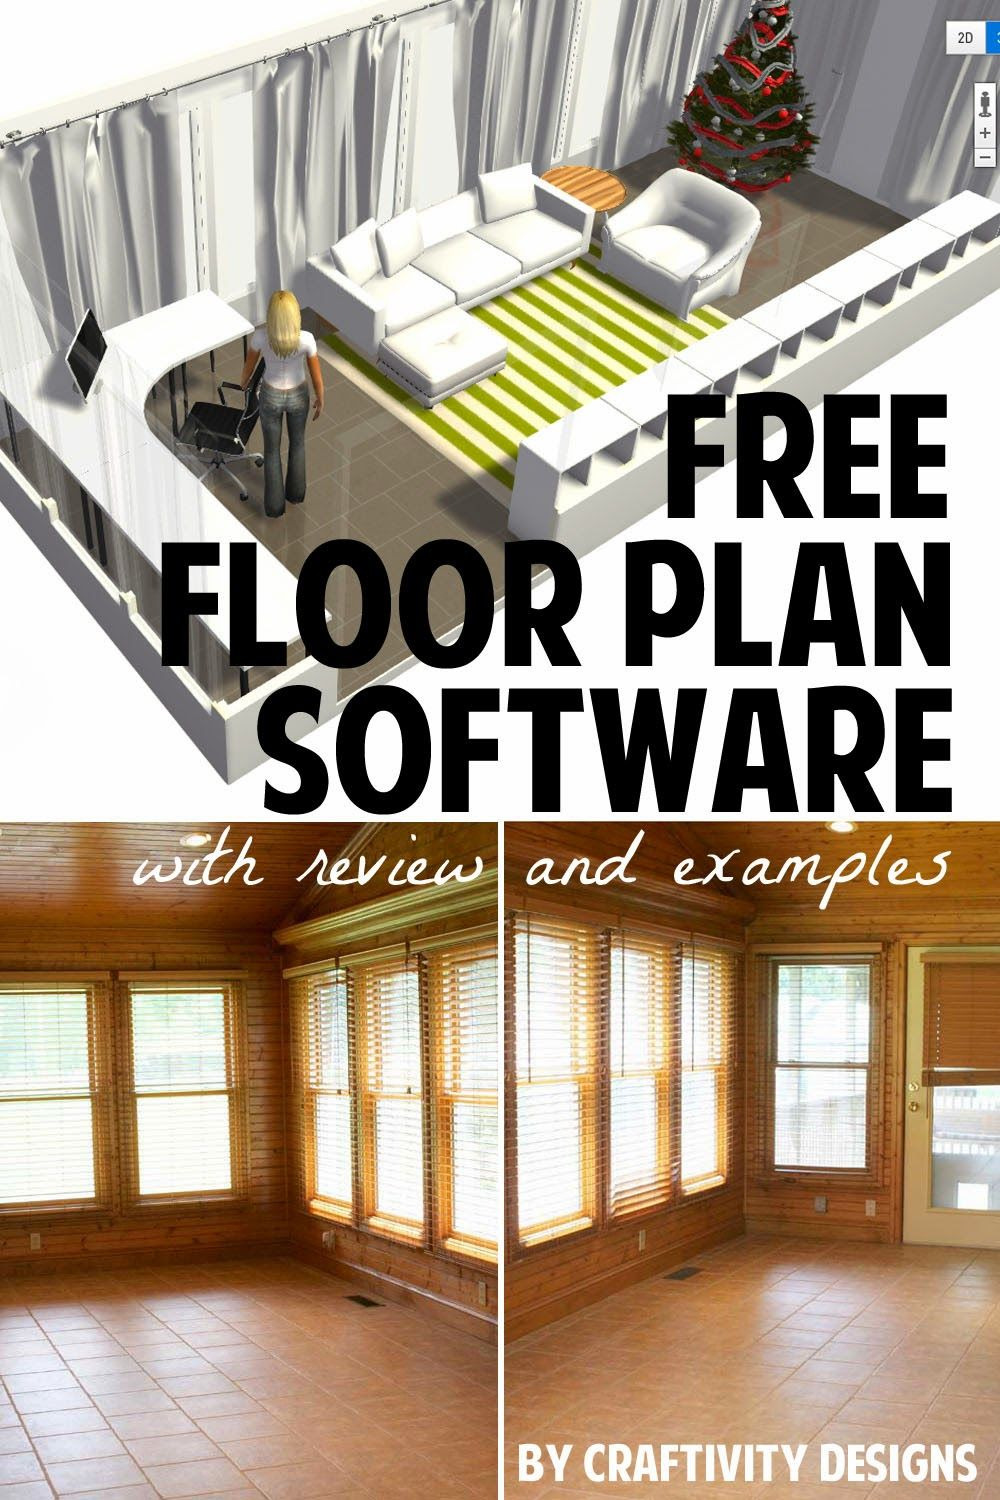 Draw Own House Plans Free New Quick Easy and Free Floor Plan software